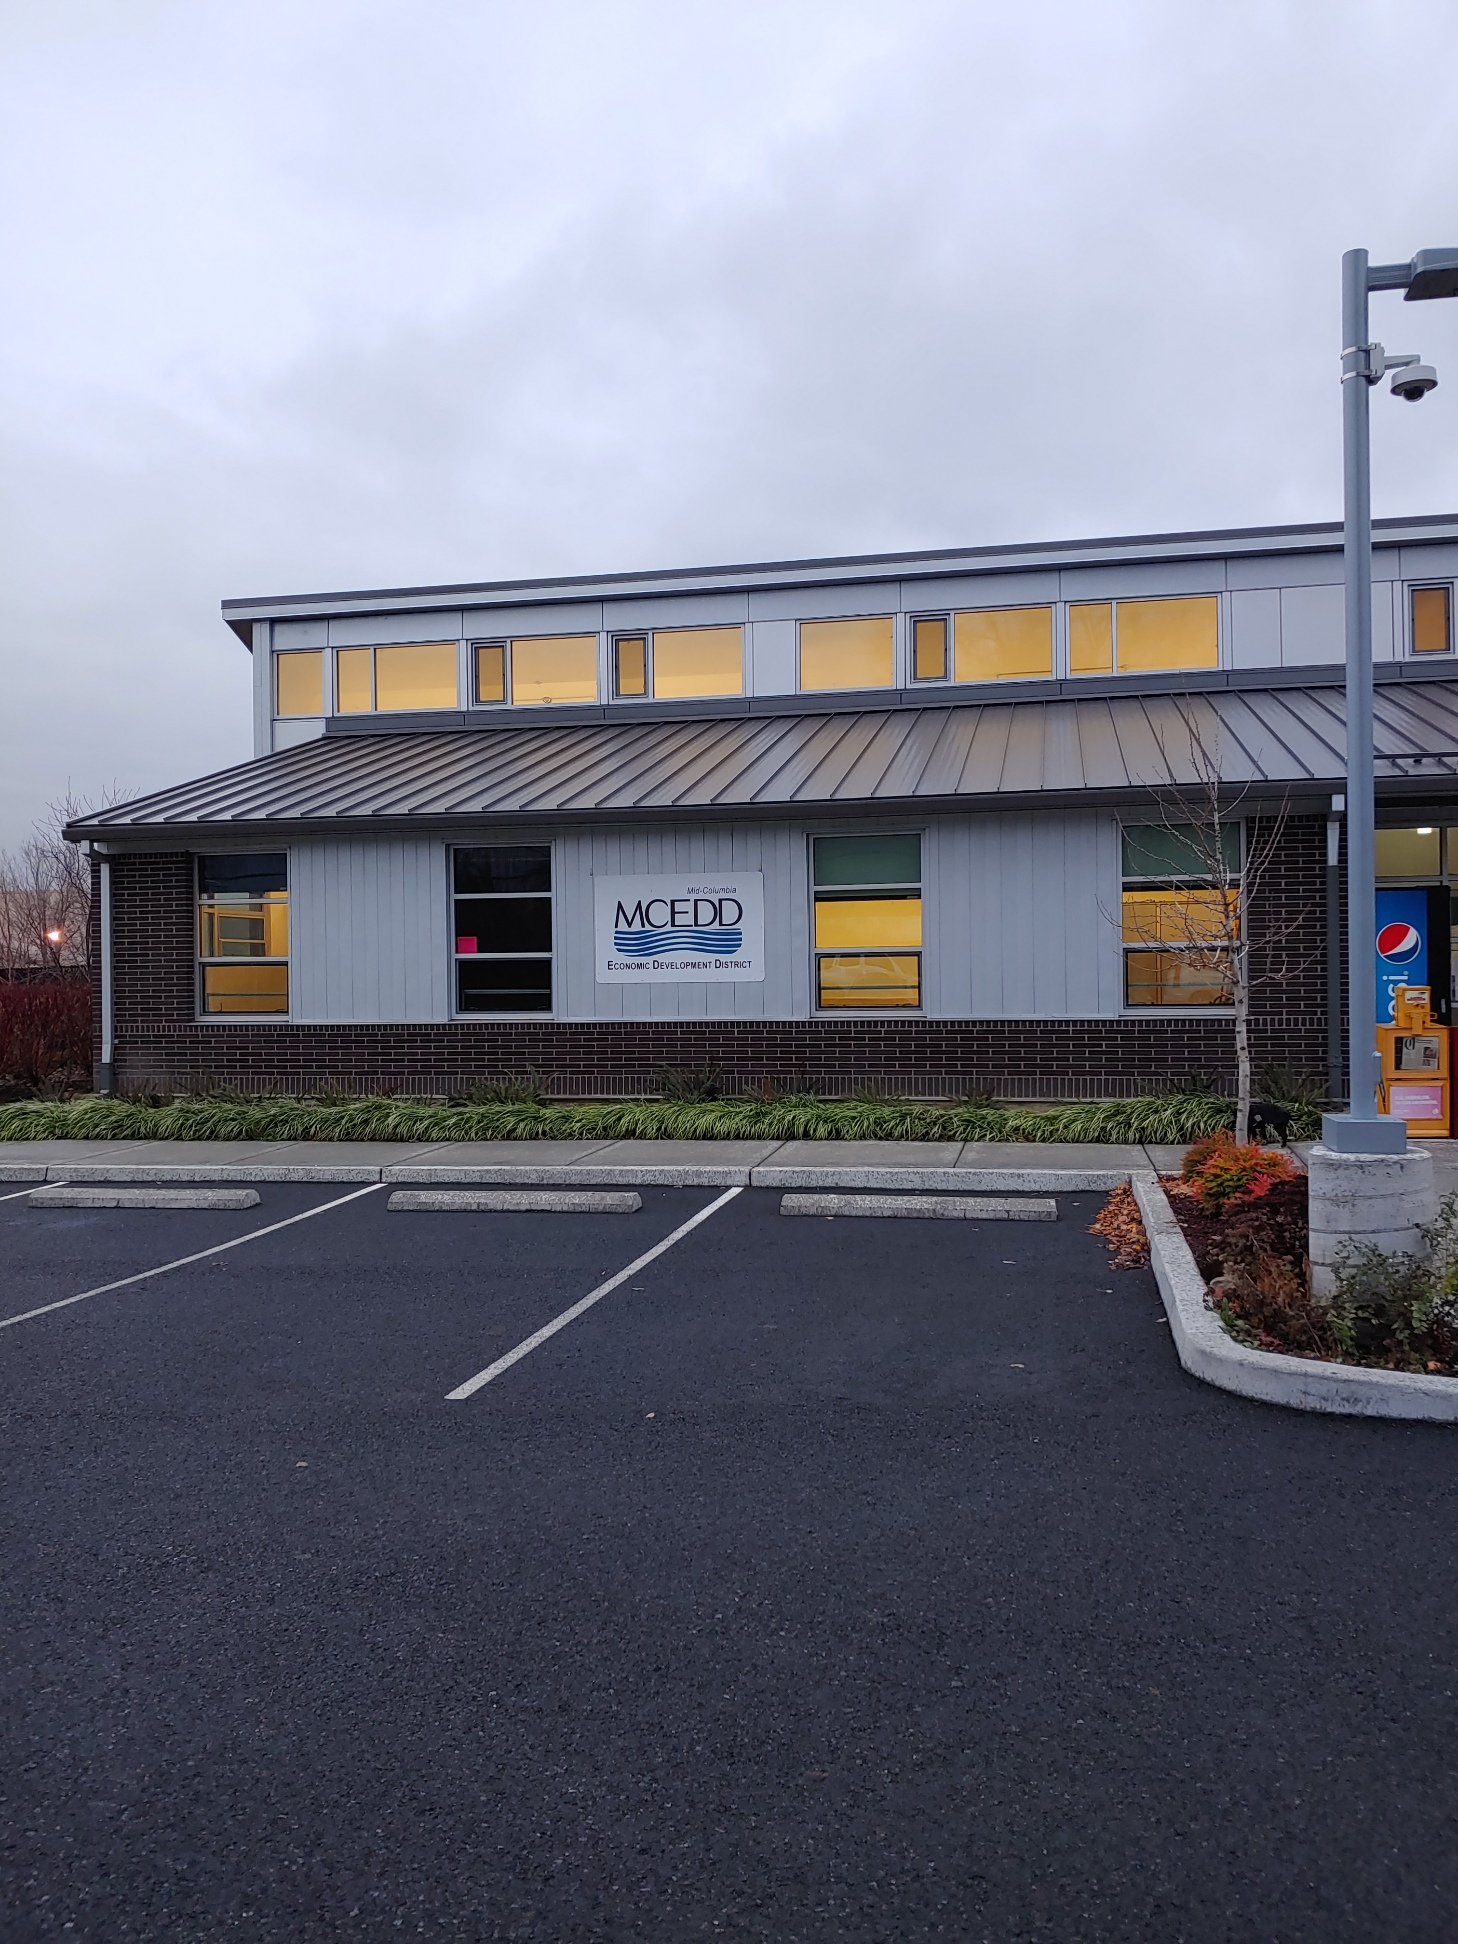 Front view of the MCEDD offices in The Dalles